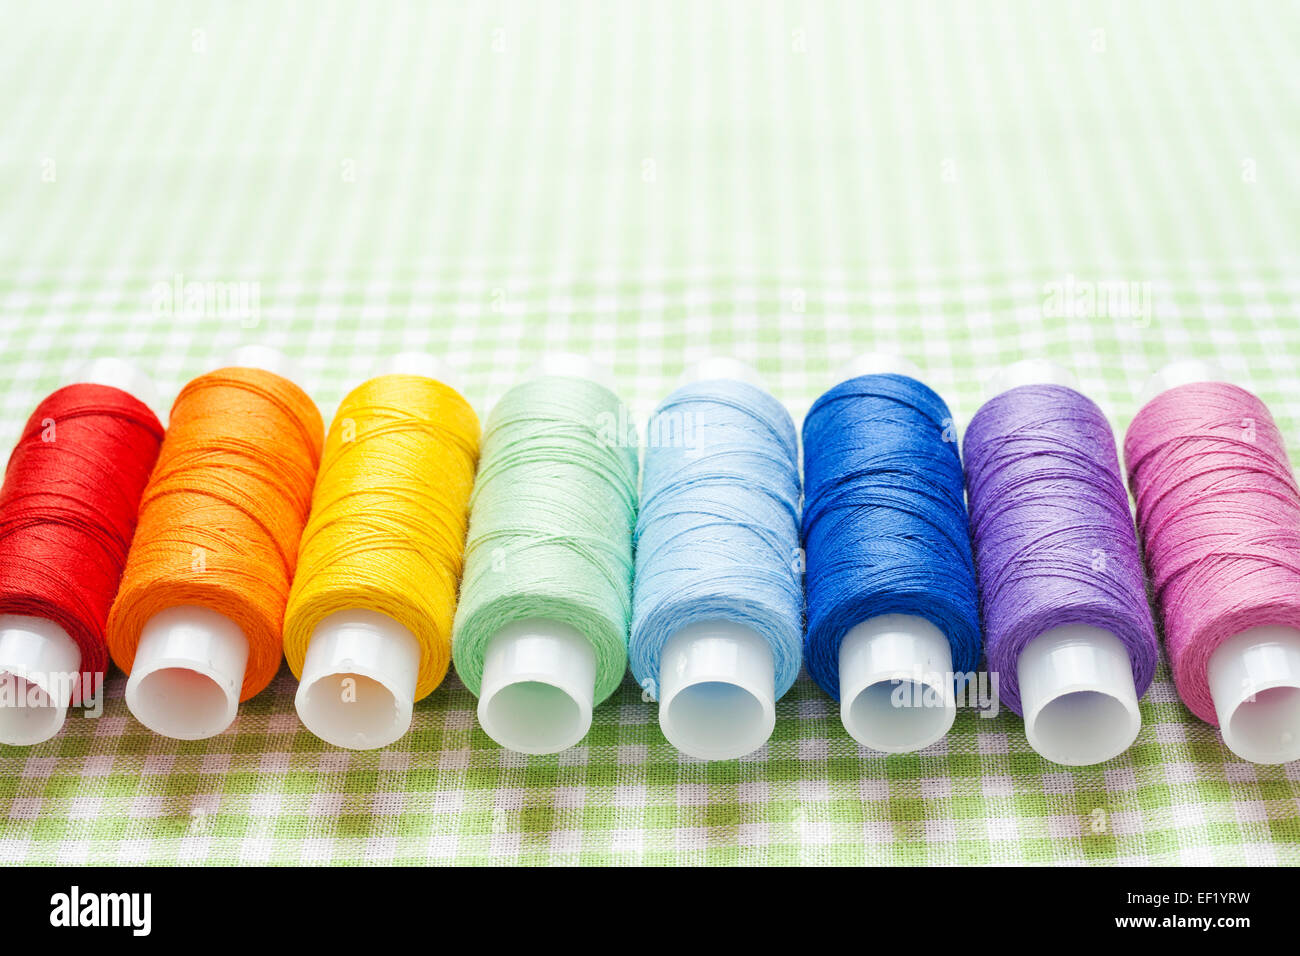 row of thread spools in rainbow colors, skein collection, top view - Stock Image